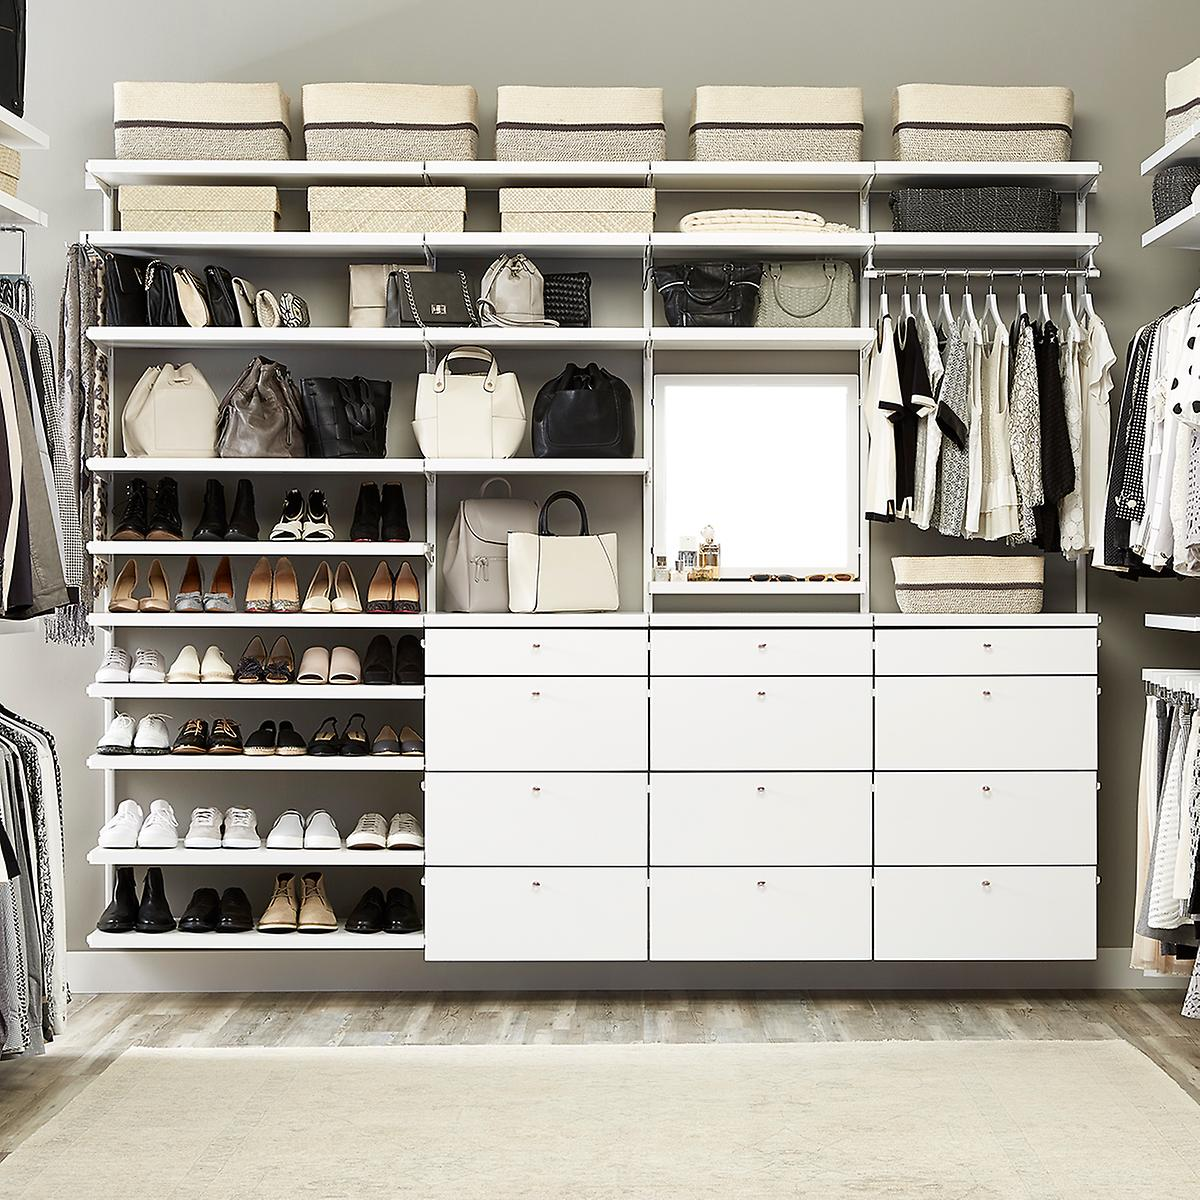 Walk In Closets Pictures custom walk-in closets - elfa walk in closet designs | the